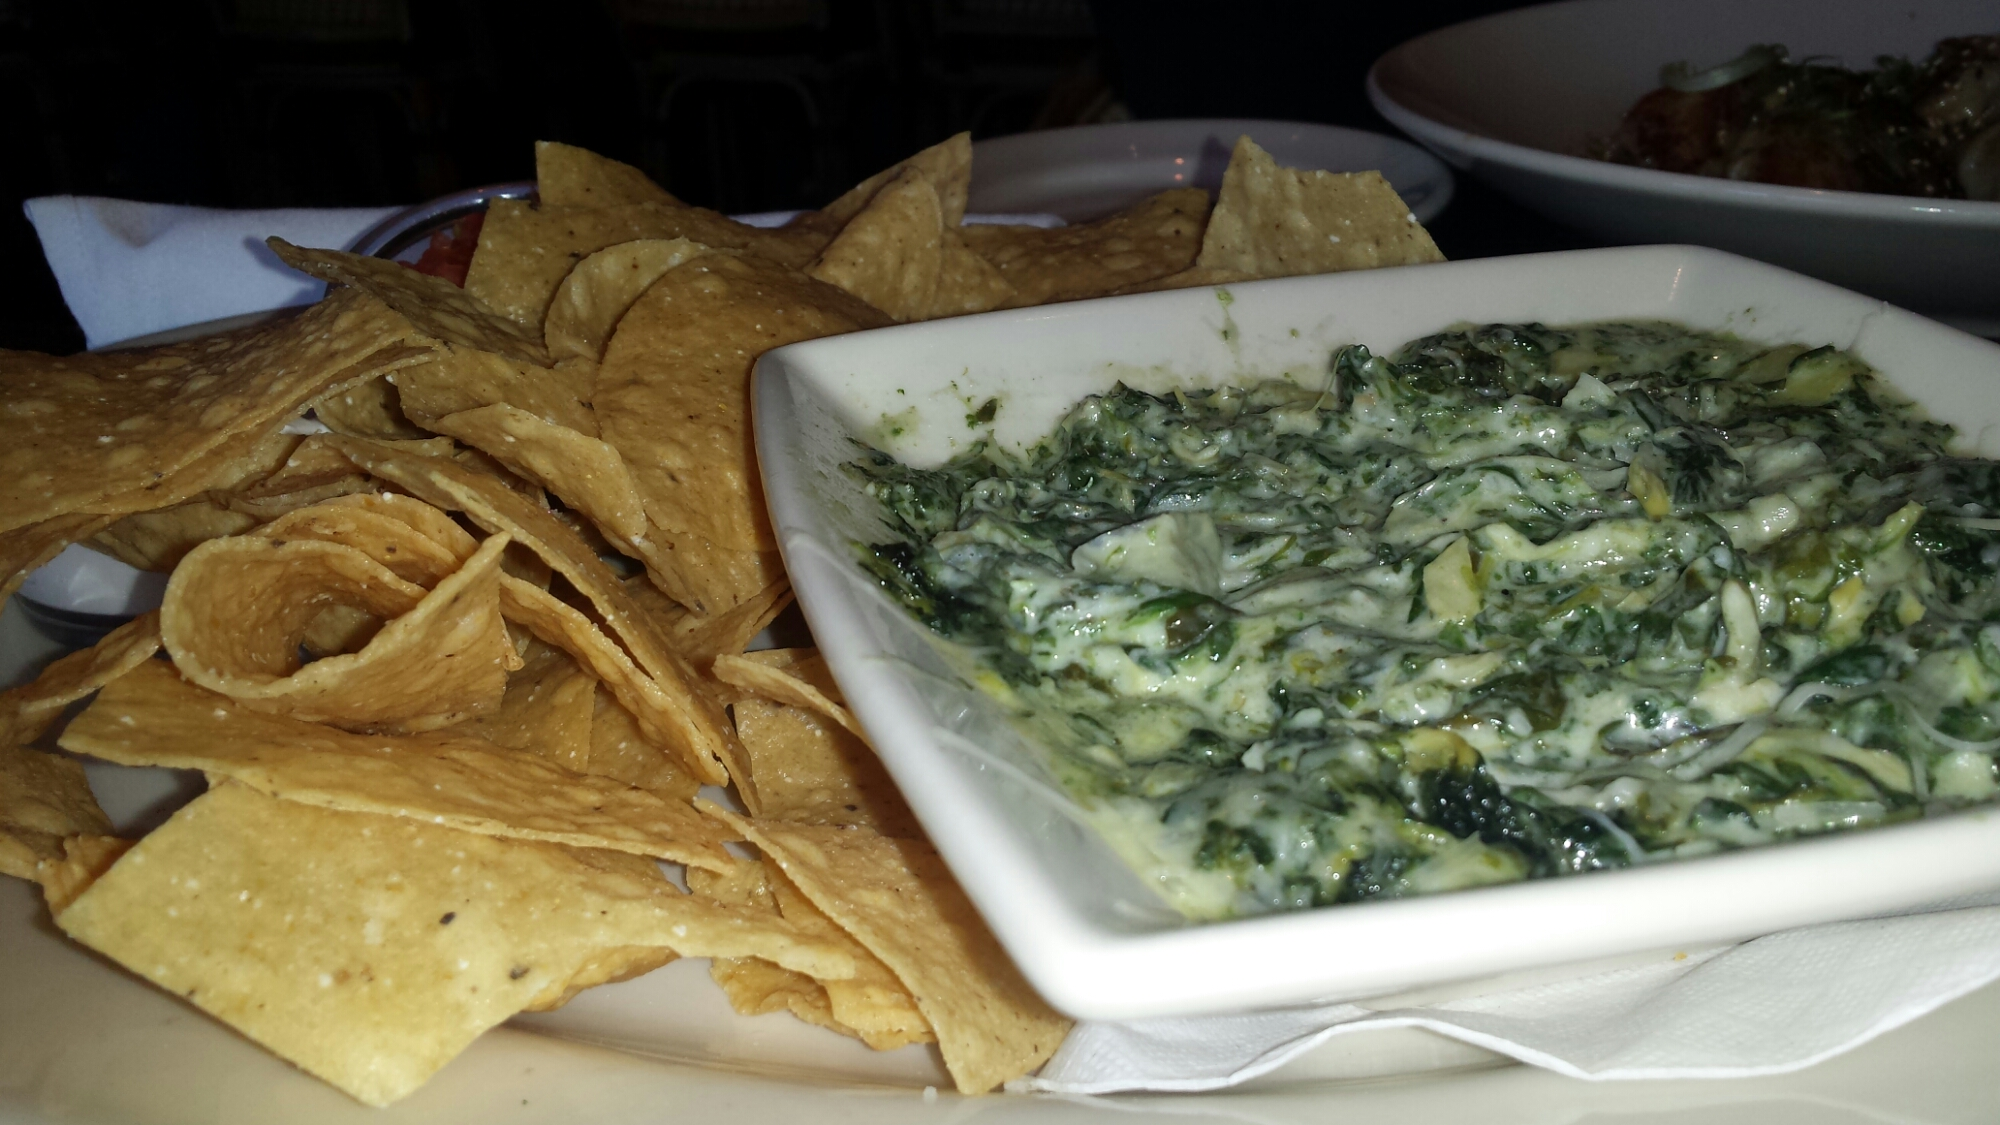 Hot Spinach and Cheese Dip- Spinach, Artichoke Hearts, Shallots, Garlic and a Mixture of Cheeses. Served Bubbly Hot with Tortilla Chips and Salsa.